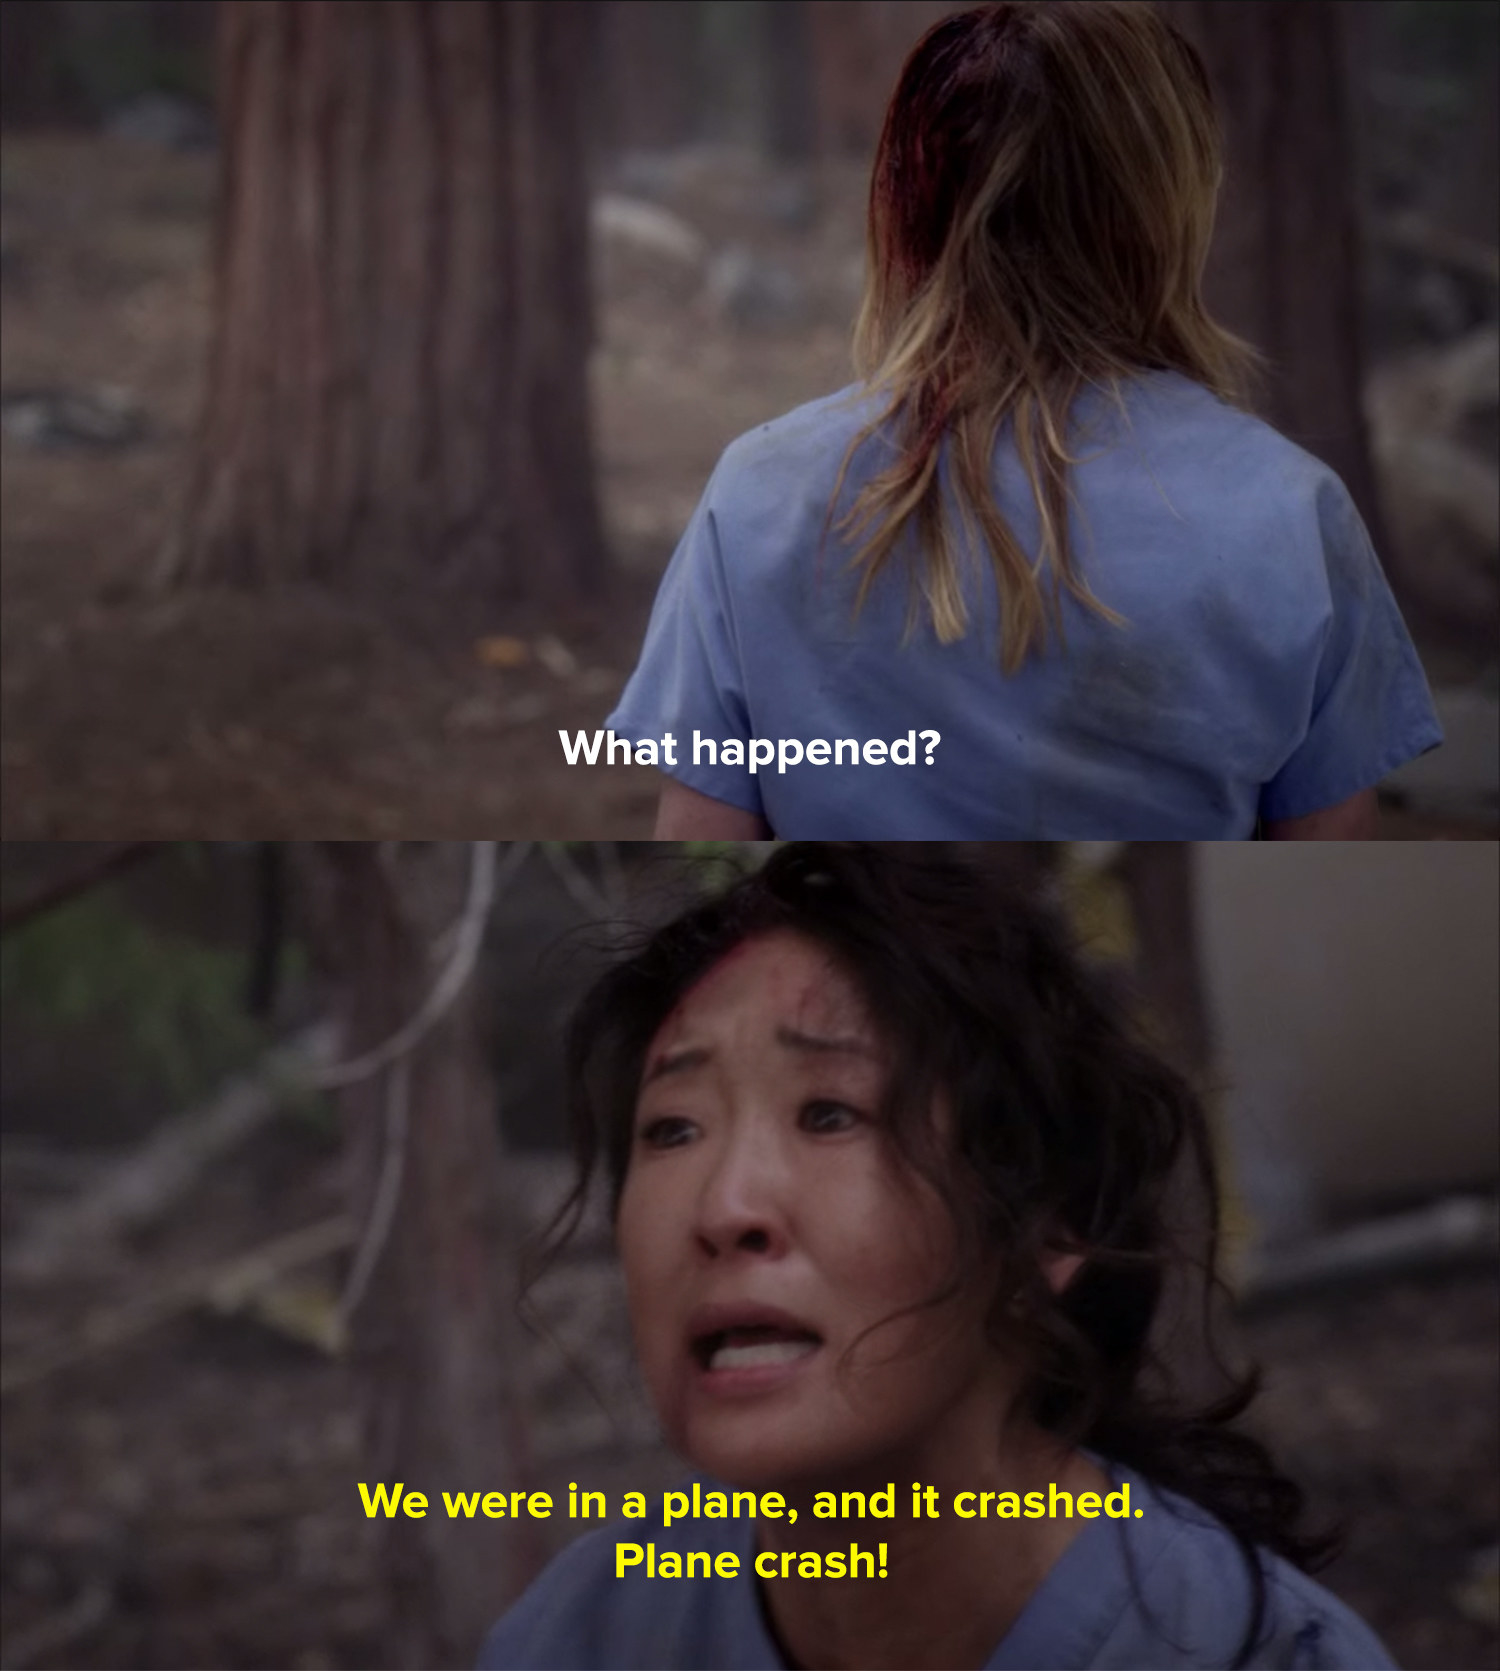 Christina and Meredith are stranded in the woods, bleeding